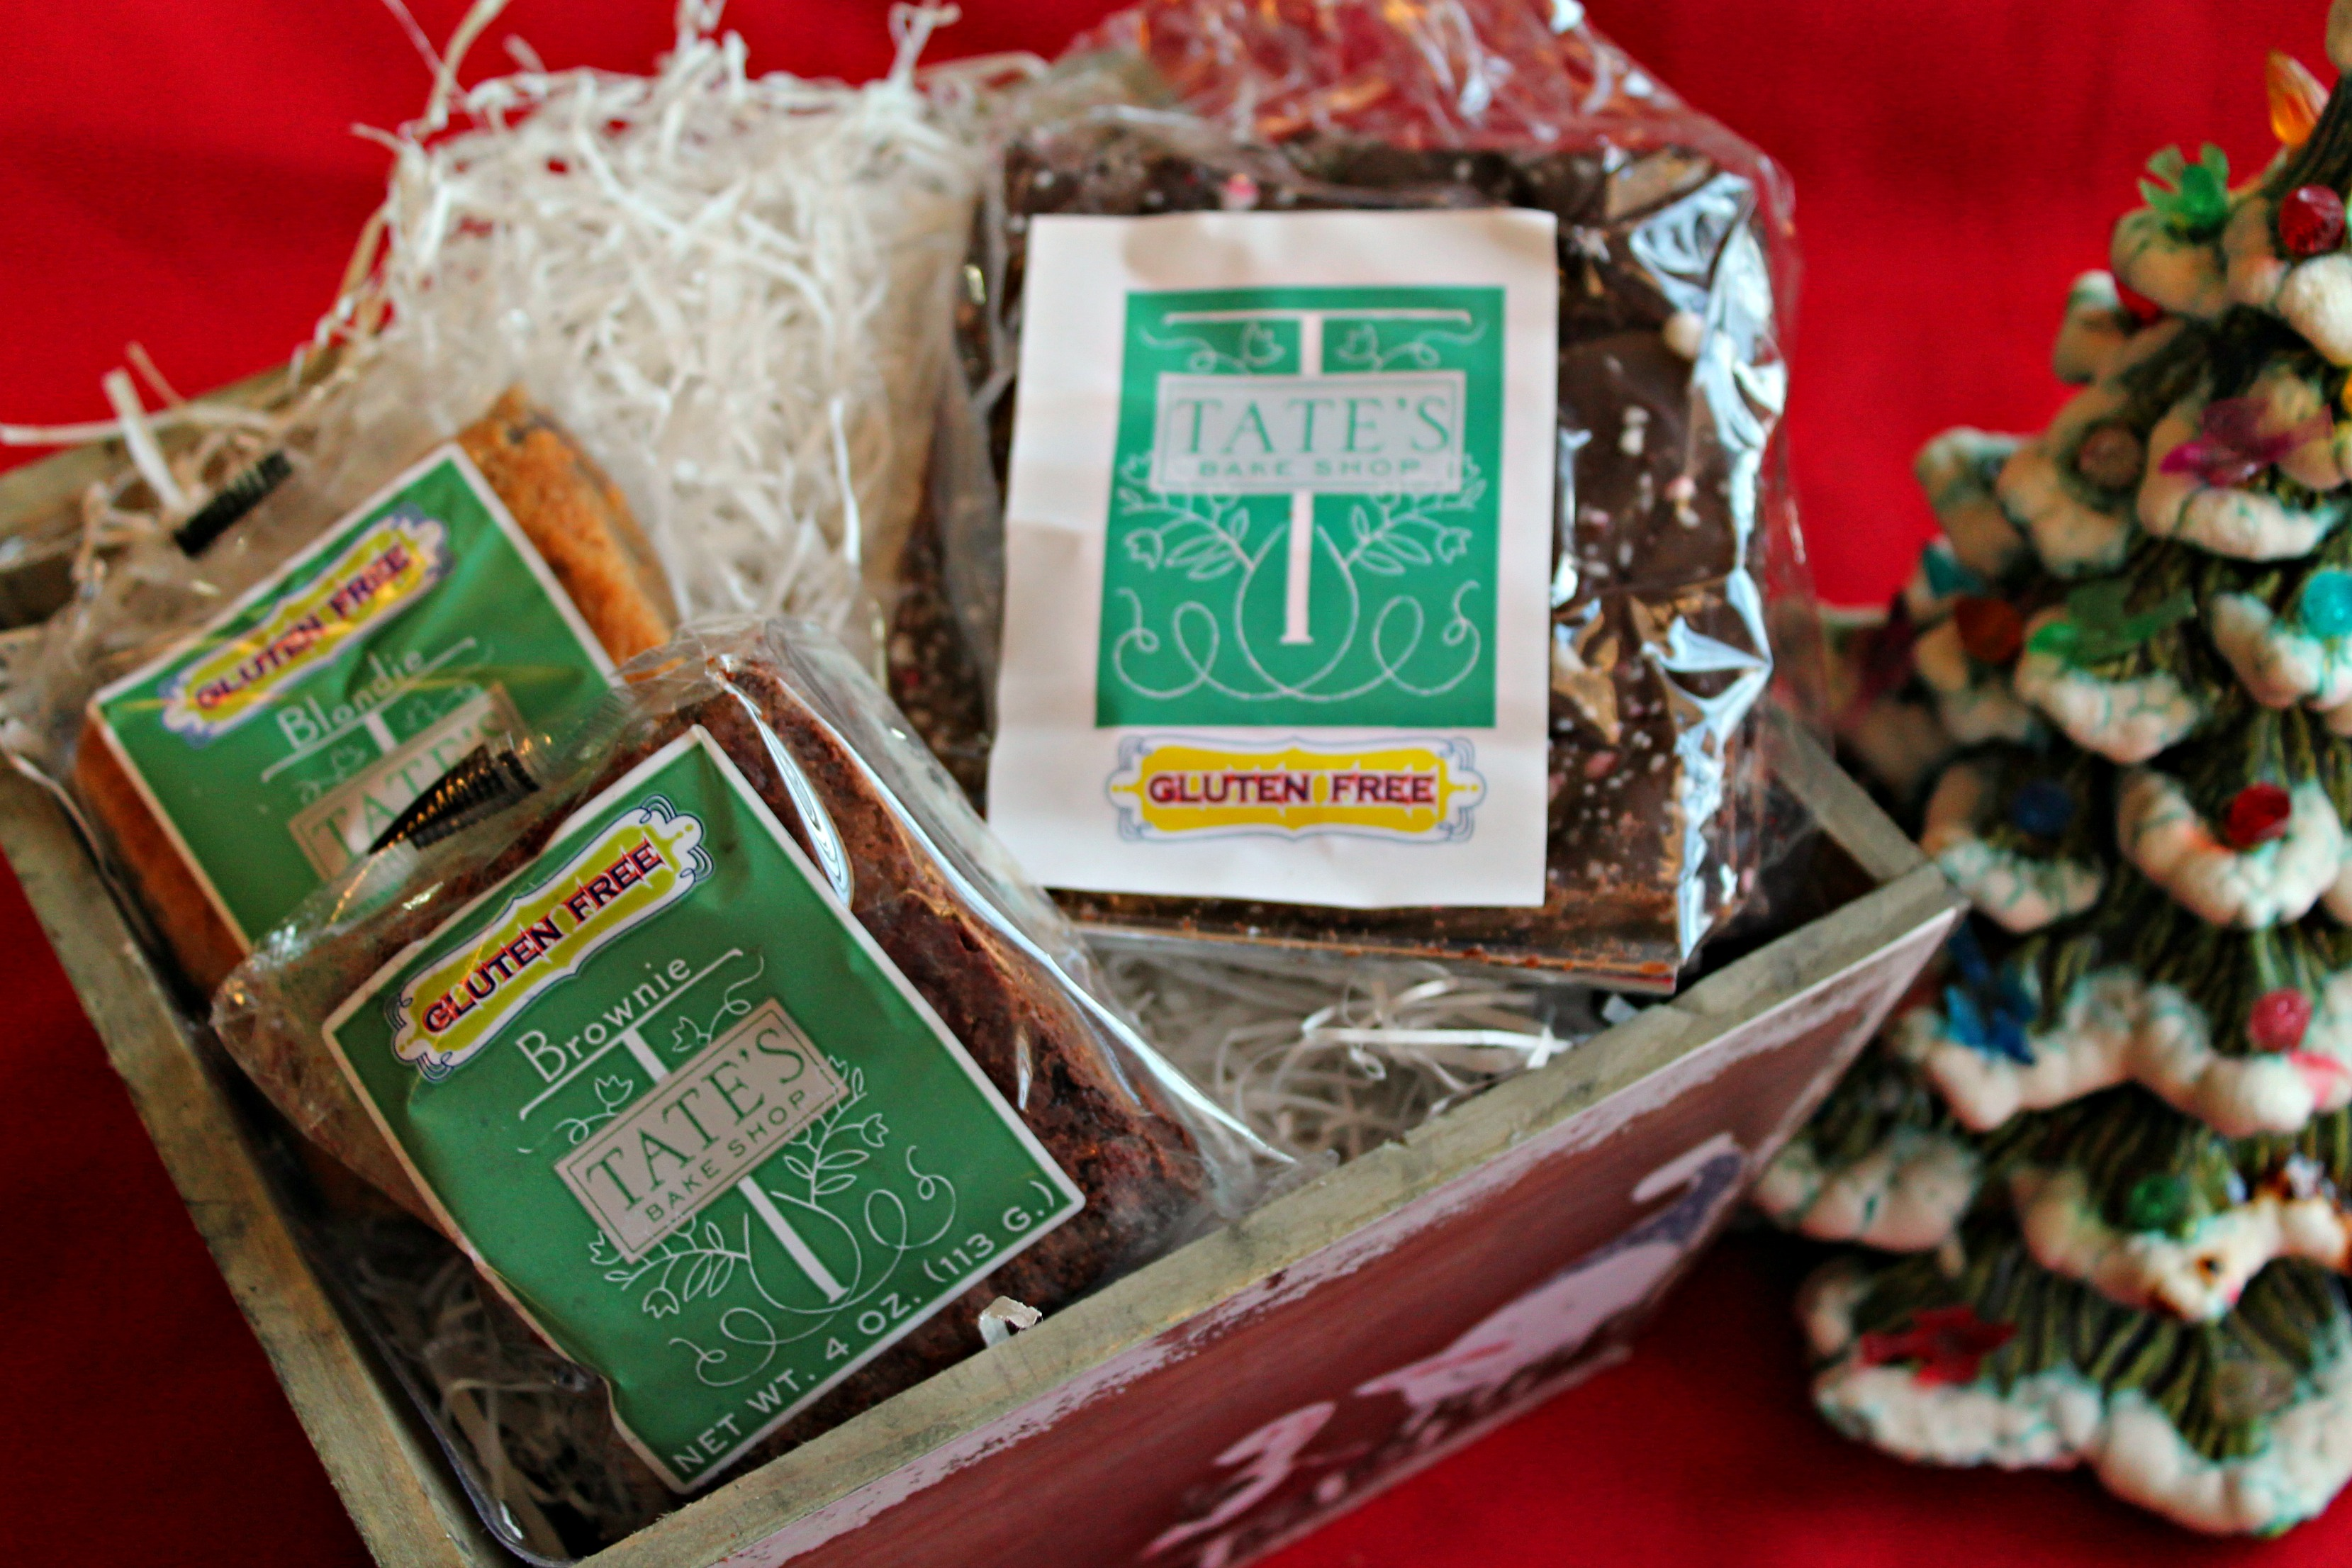 Gluten free goodies with tates bake shop giveaway simply tates gluten free bake shop negle Gallery